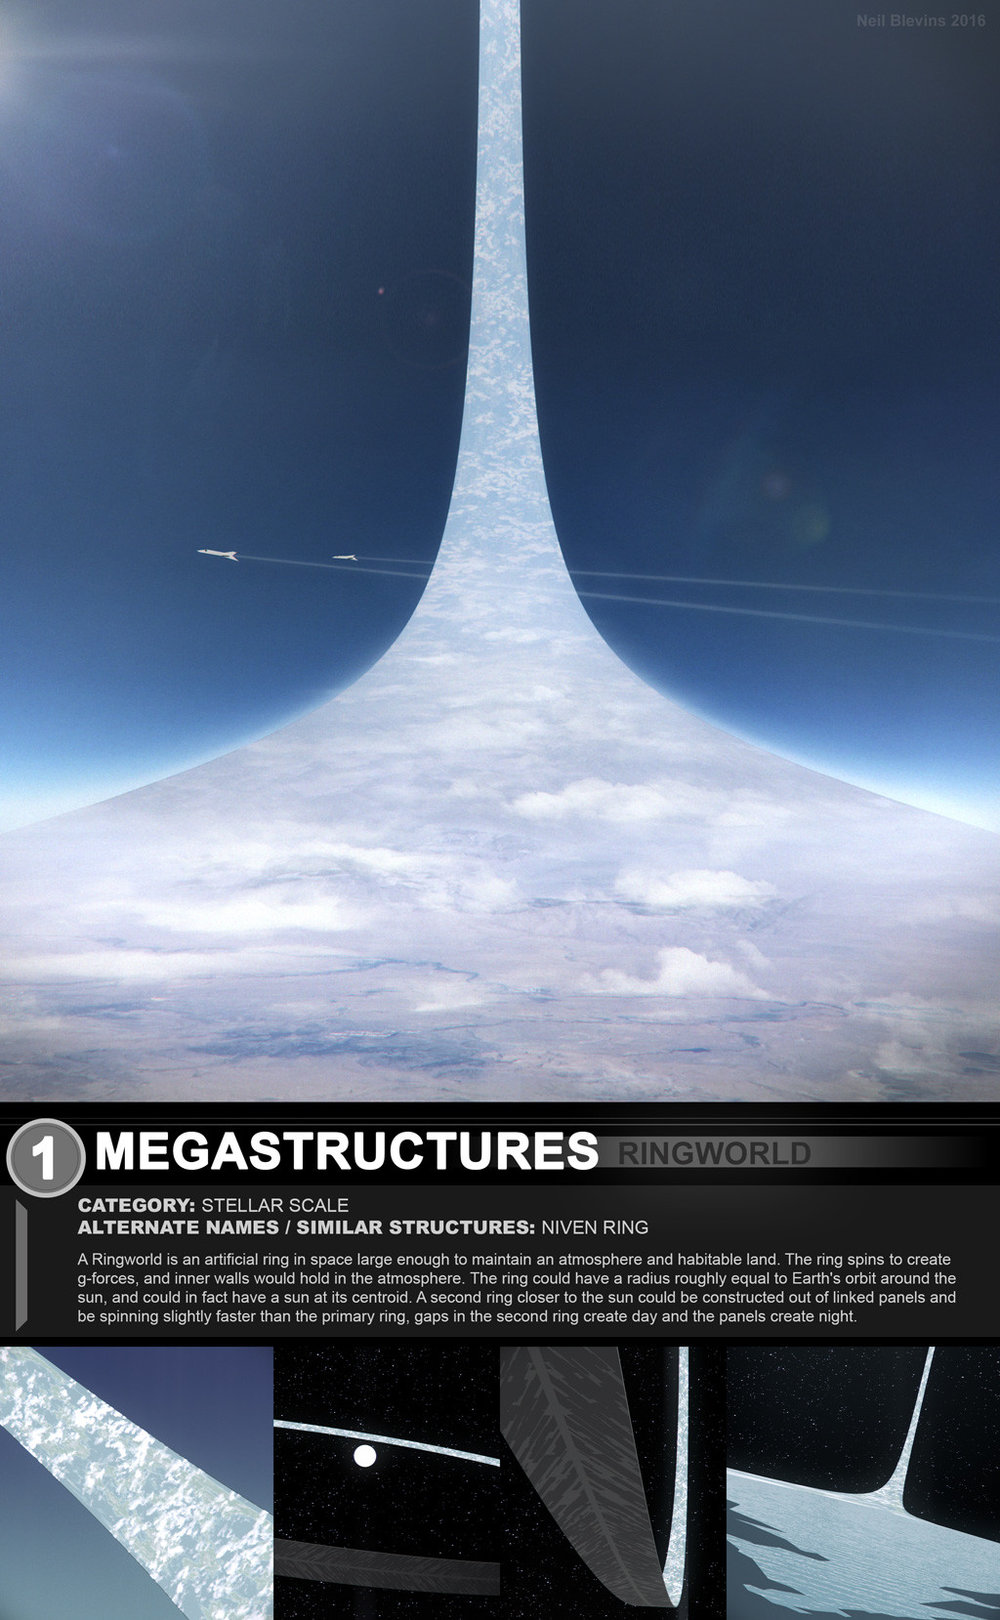 neil-blevins-megastructures-1-ringworld-design-packet[1].jpg